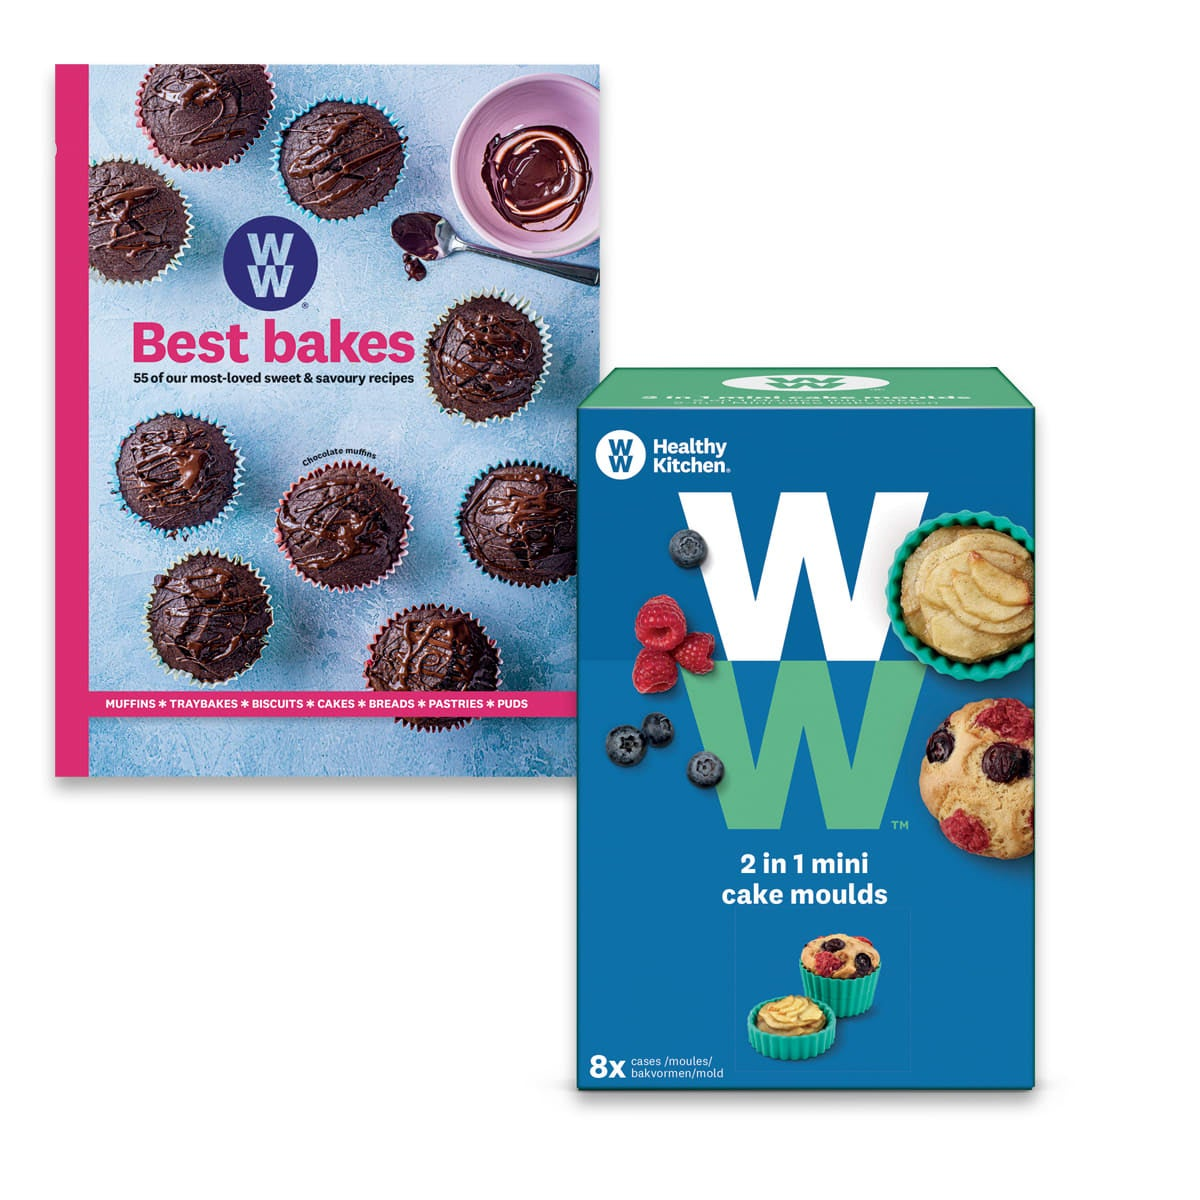 WW Bakes Kit, includes Best Bakes Cookbook, 2 in 1 muffin and tart cases